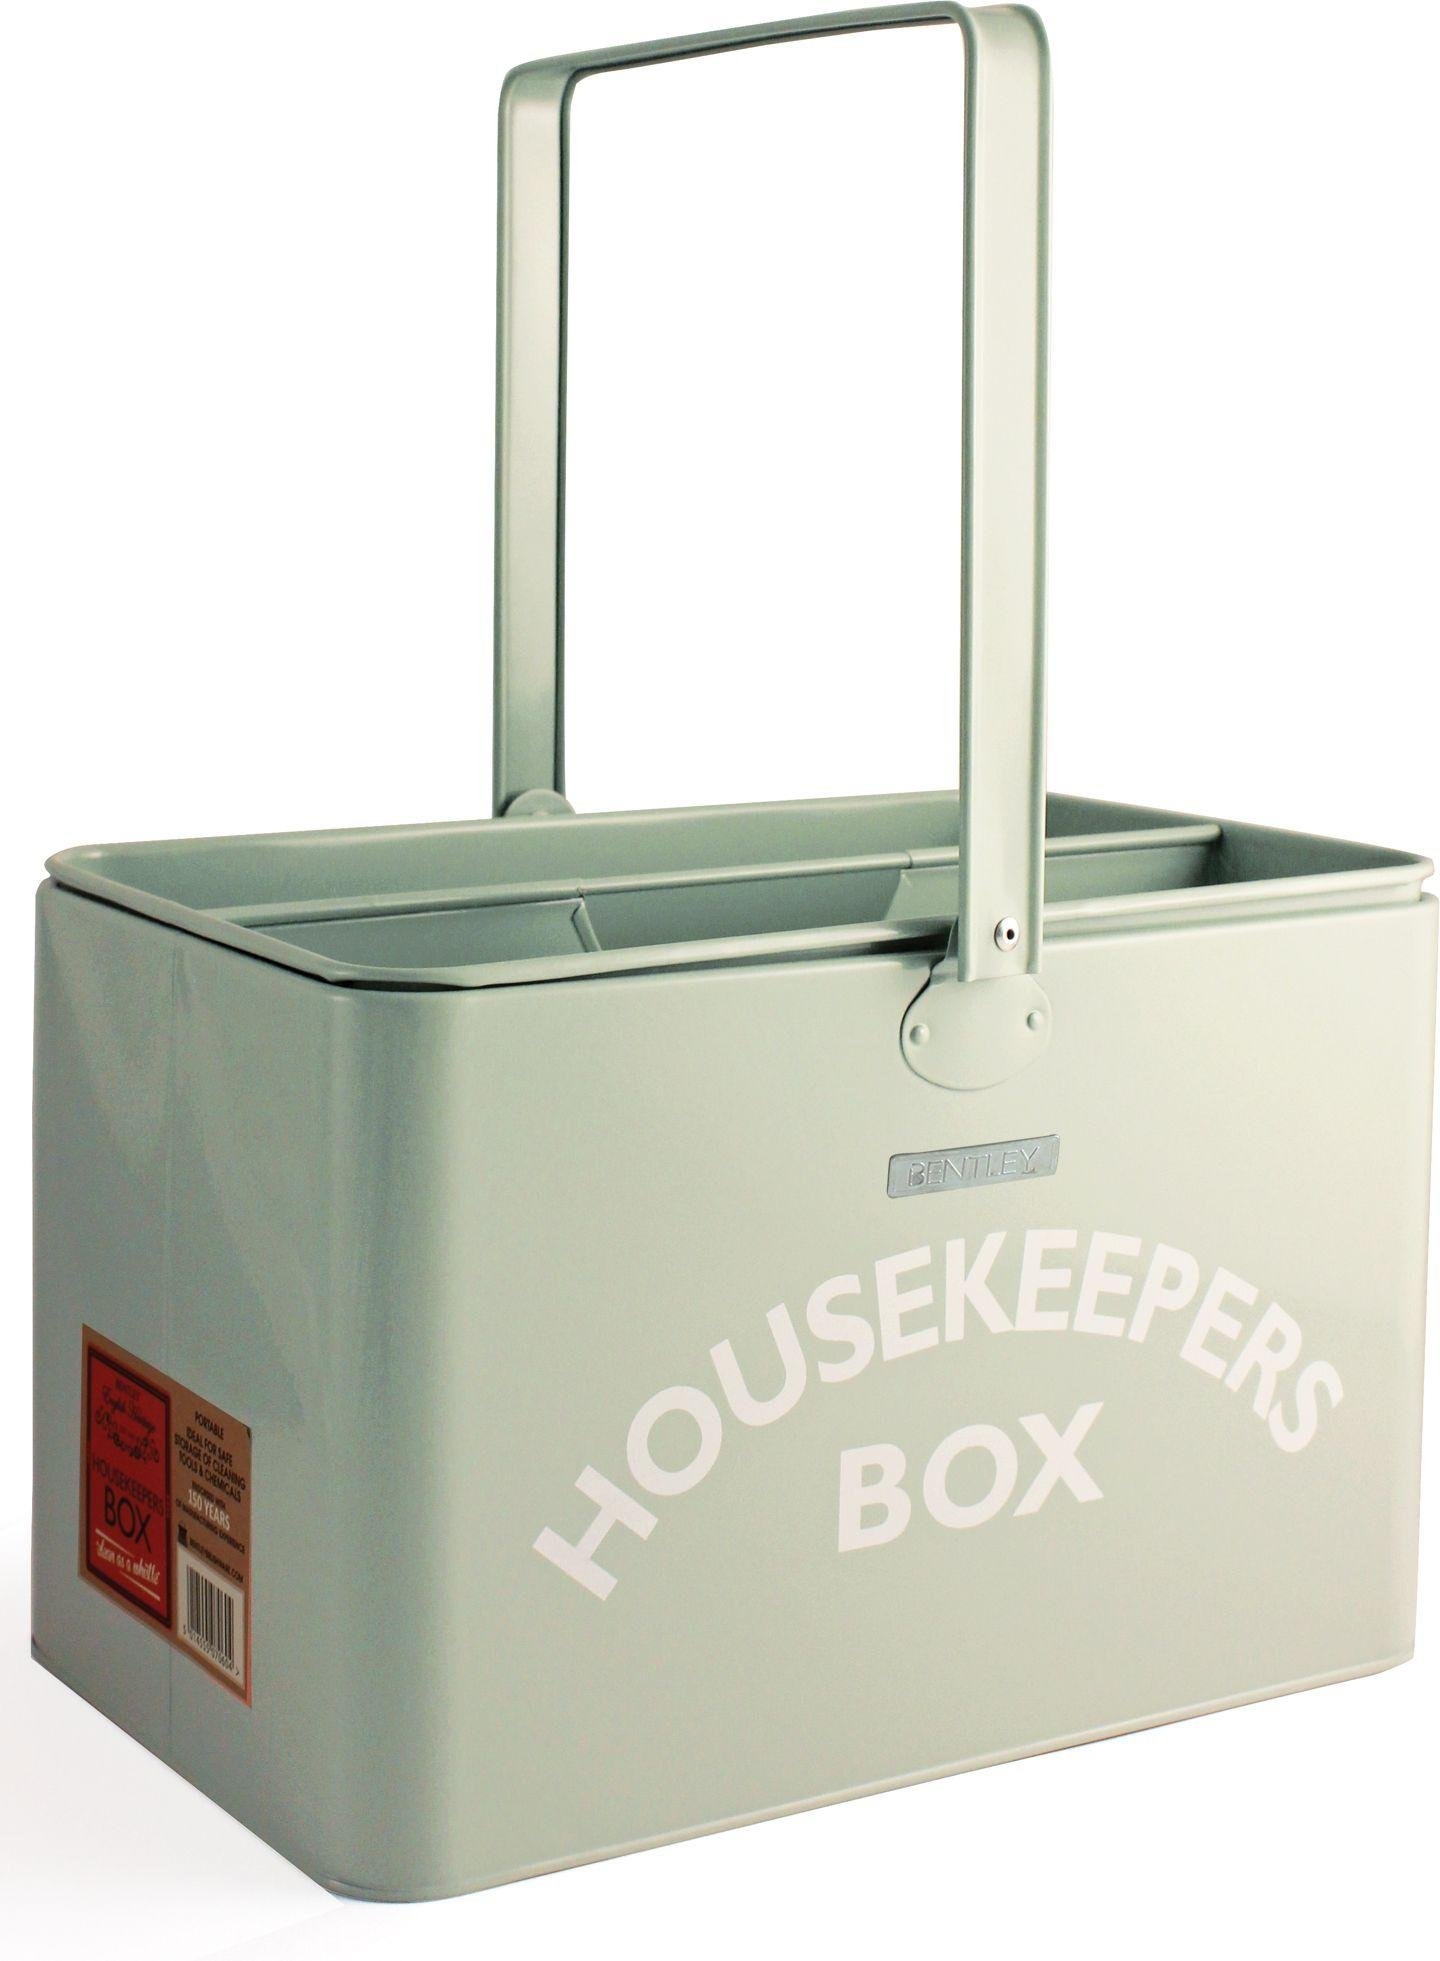 Image of Heritage Traditional Housekeeper's Cleaning Caddy.